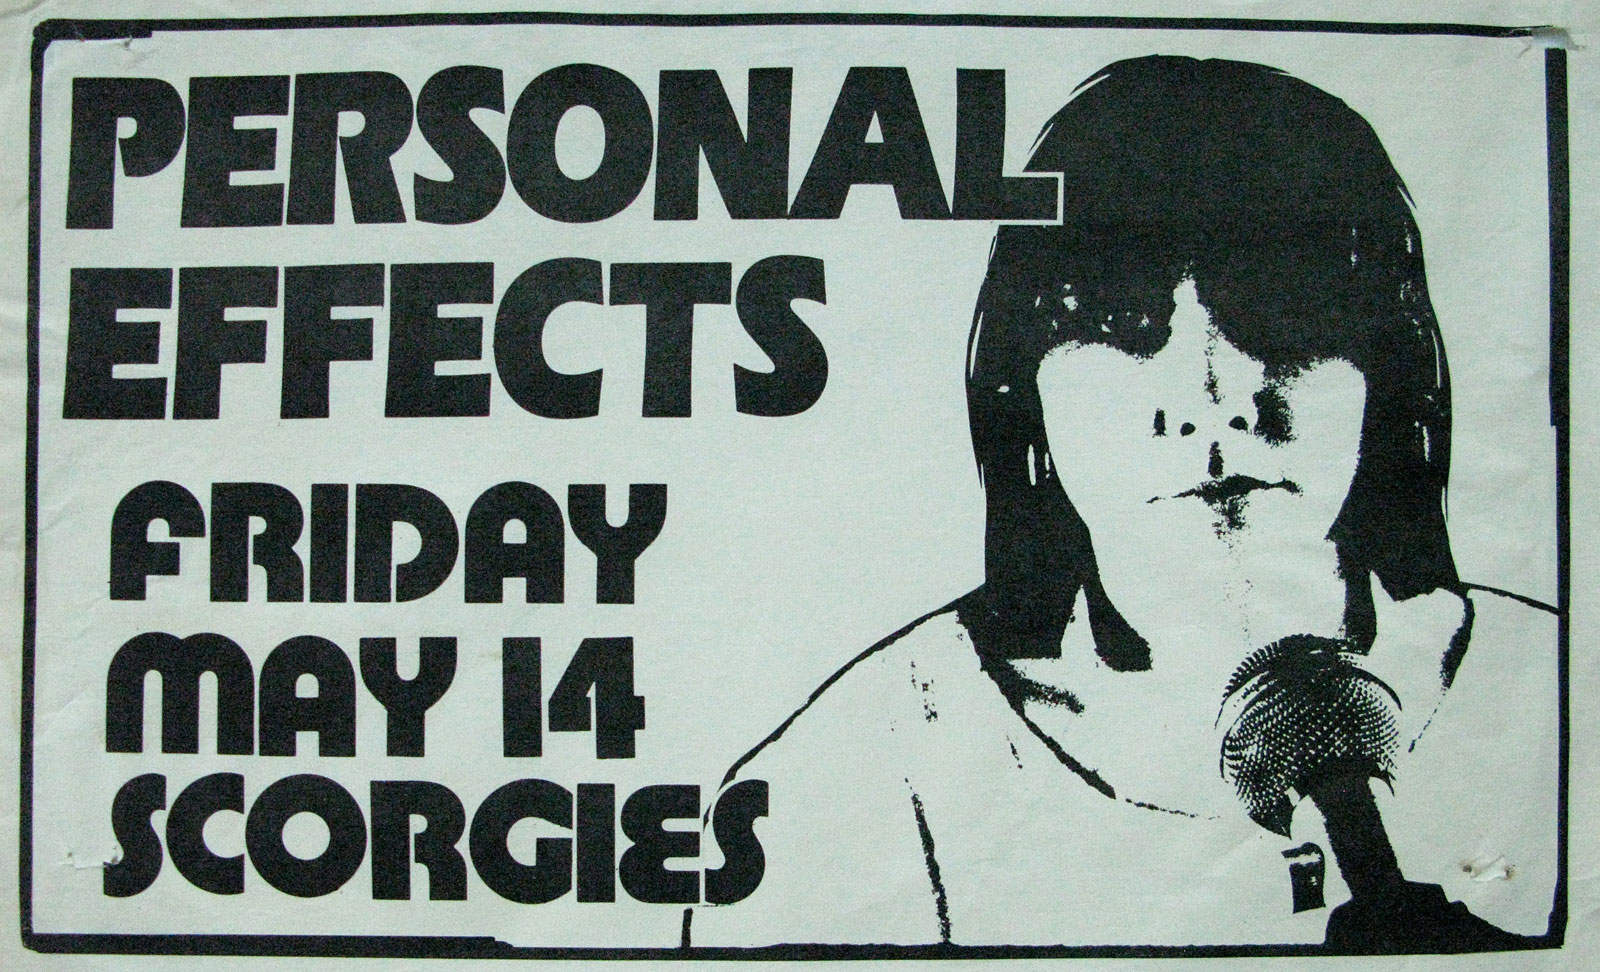 Poster for Personal Effects at Scorgies in Rochester, New York on 05.14.1982